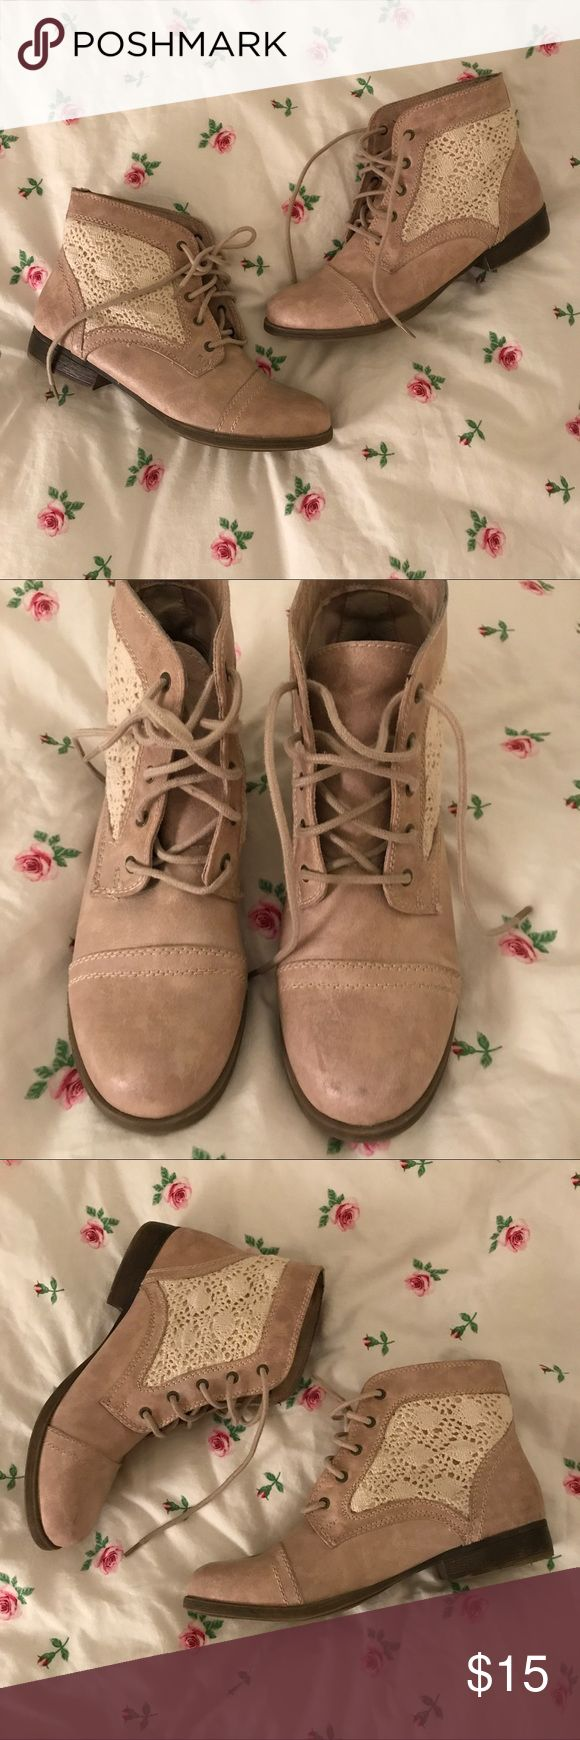 Target boots Pretty beige boots with lace detail on the sides. Barely ever worn! Look brand new. Size 9 1/2. Shoes Ankle Boots & Booties